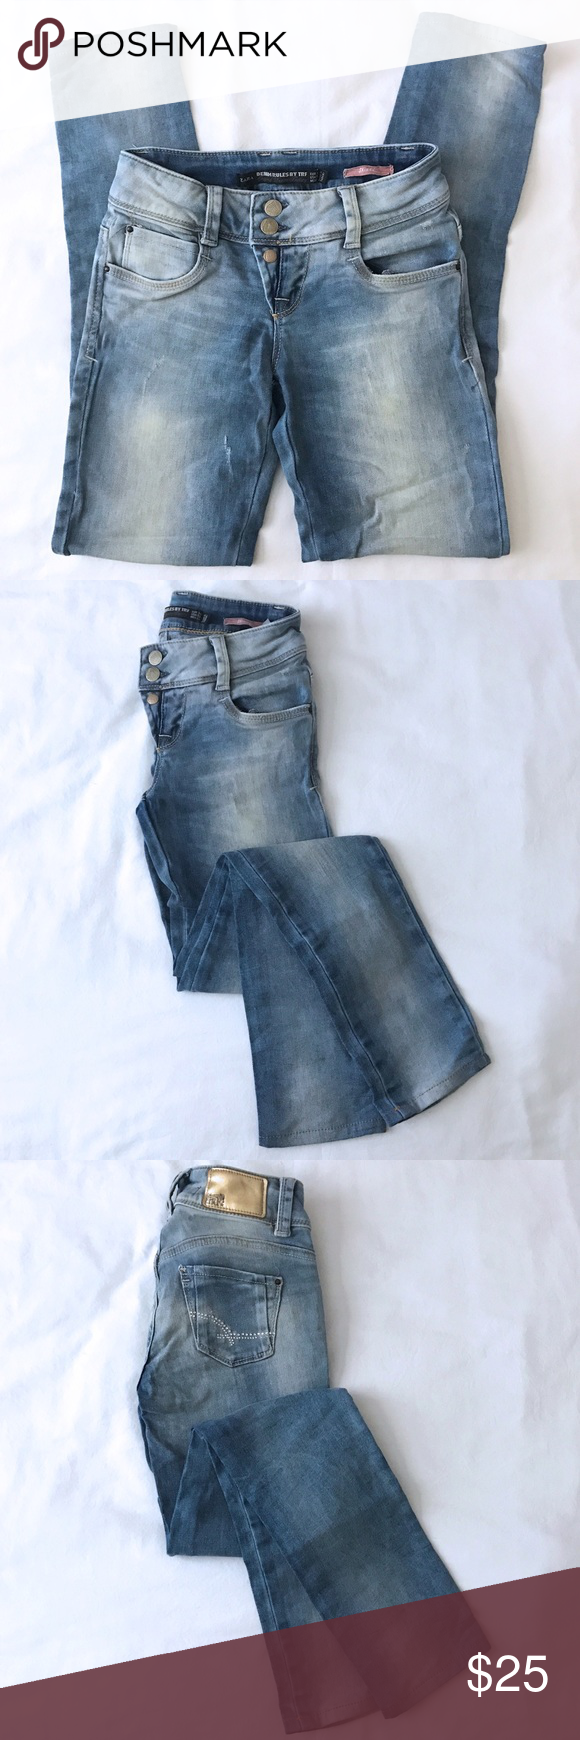 ZARA TRF Washed Blue Skinny Denim Jeans 24/02 Thank you very much for looking!! ◆◇◆◇◆◇◆◇◆◇◆◇◆◇◆◇◆◇◆◇  Zara Denim Rules by TRF Skinny  ★Brand/Zara TRF  ★Condition/Good  ★Size/24/02 7in Rise 29in Inseam  ★Color/Washed  ★Material/Cotton 98%, Elastane 2%  ★Weight/1lb 5oz  ★Two front pockets.  ★Two rear pockets.  ★Smoke free home:)  ◆◇◆◇◆◇◆◇◆◇◆◇◆◇◆◇◆◇◆◇ Be sure to check out my other listings!! Zara Jeans Skinny